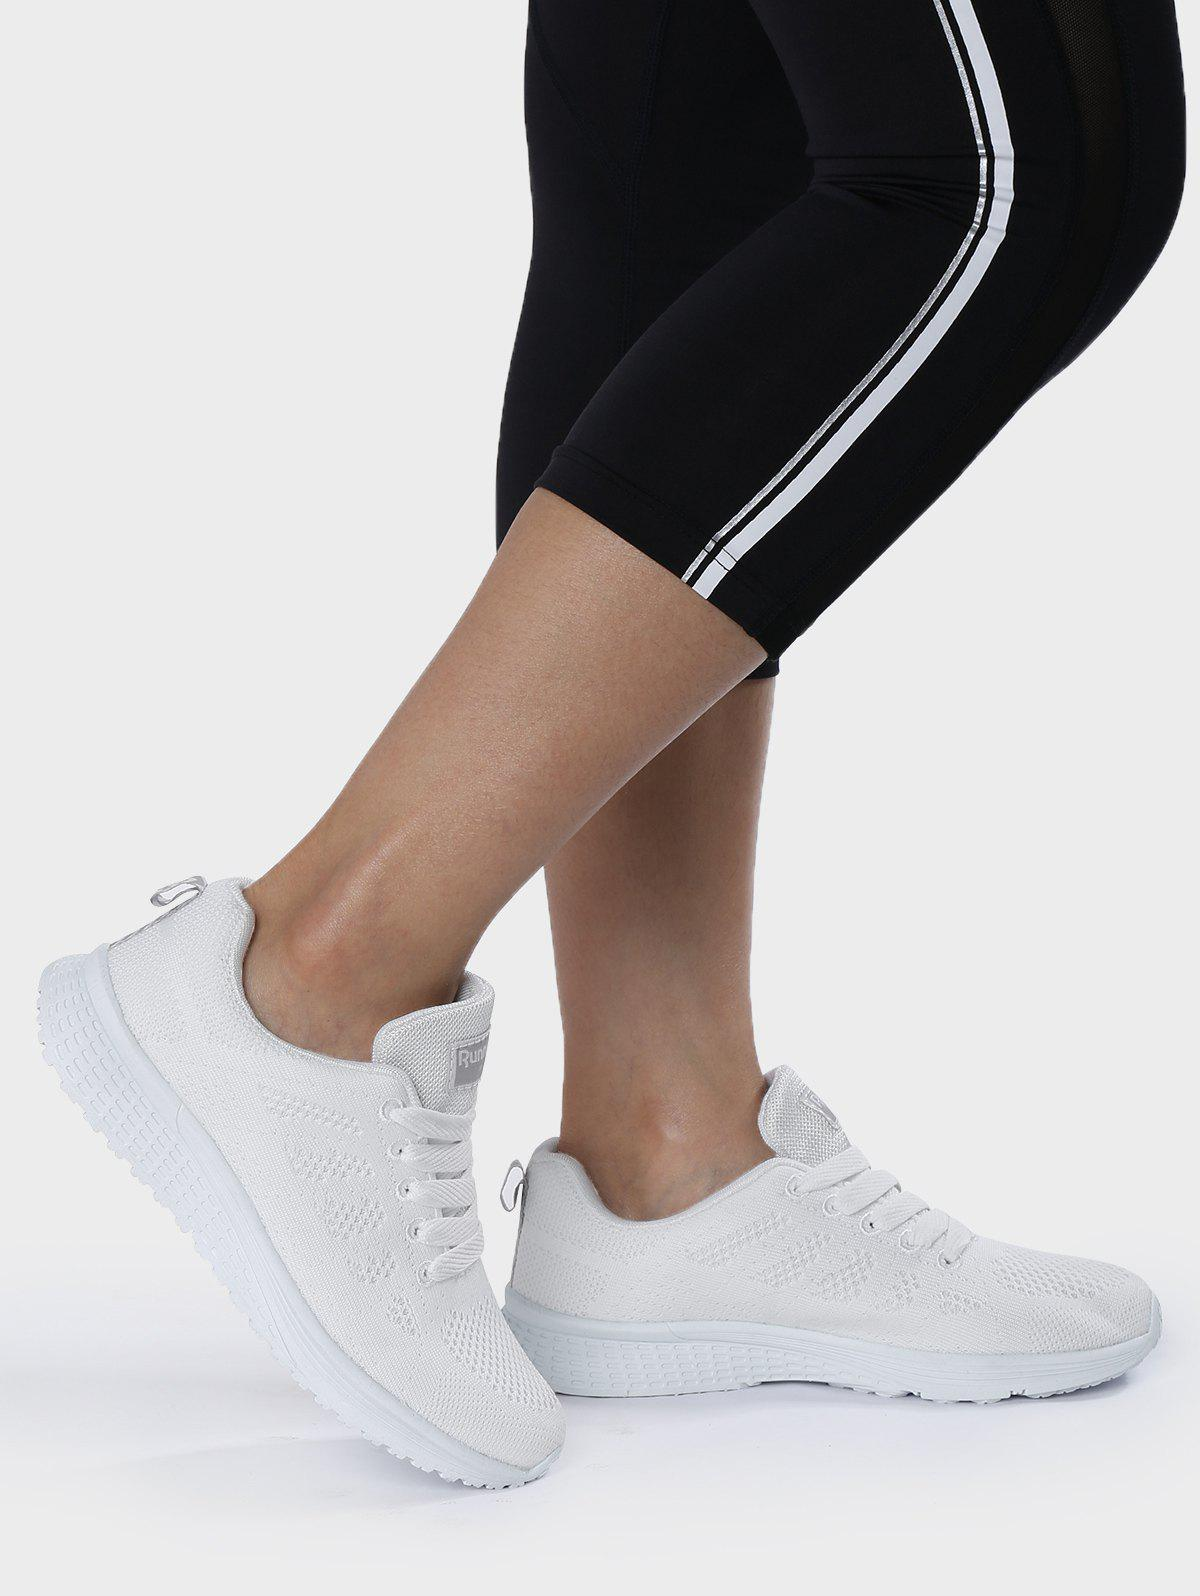 Fancy Breathable Eyelet Embroidery Athletic Shoes